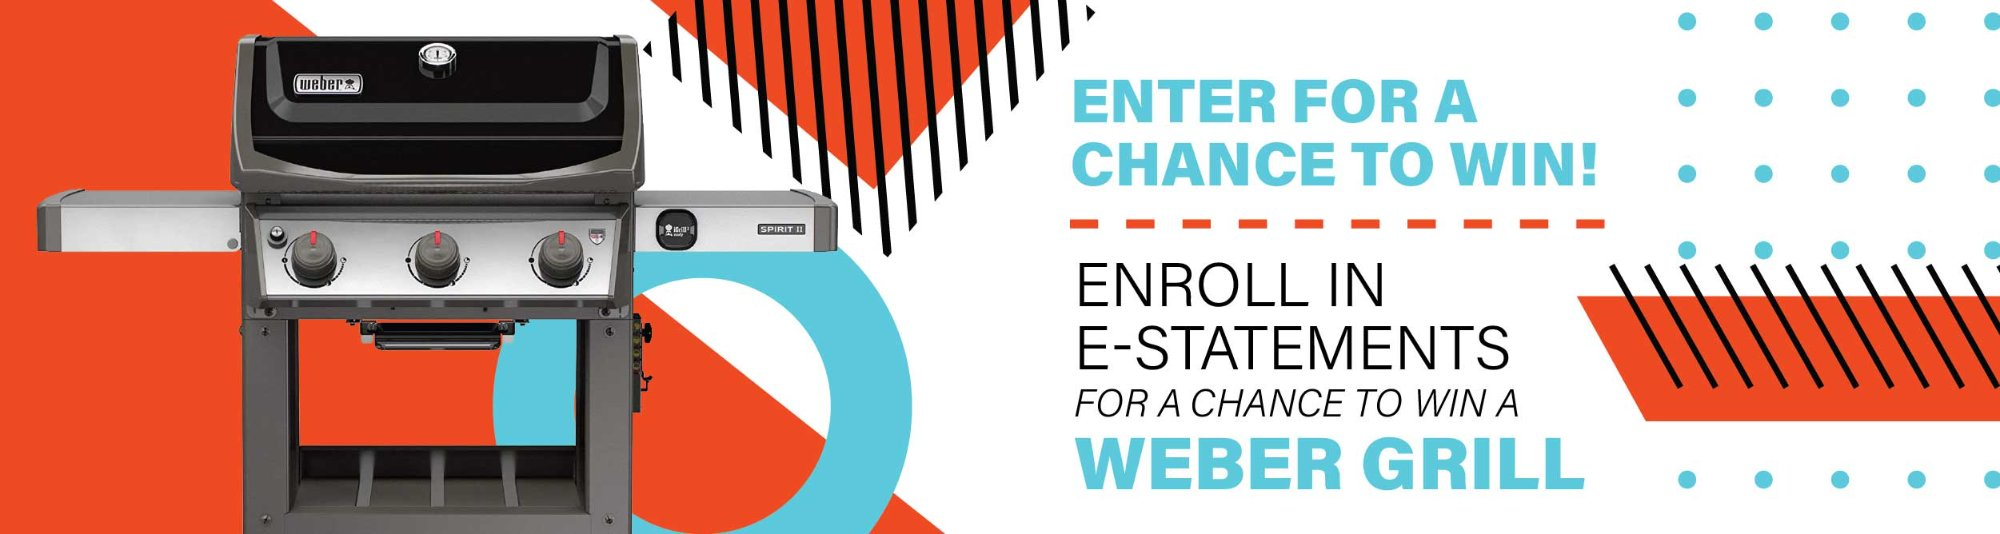 Enroll in e-Statements for a chance to win a Weber Grill.